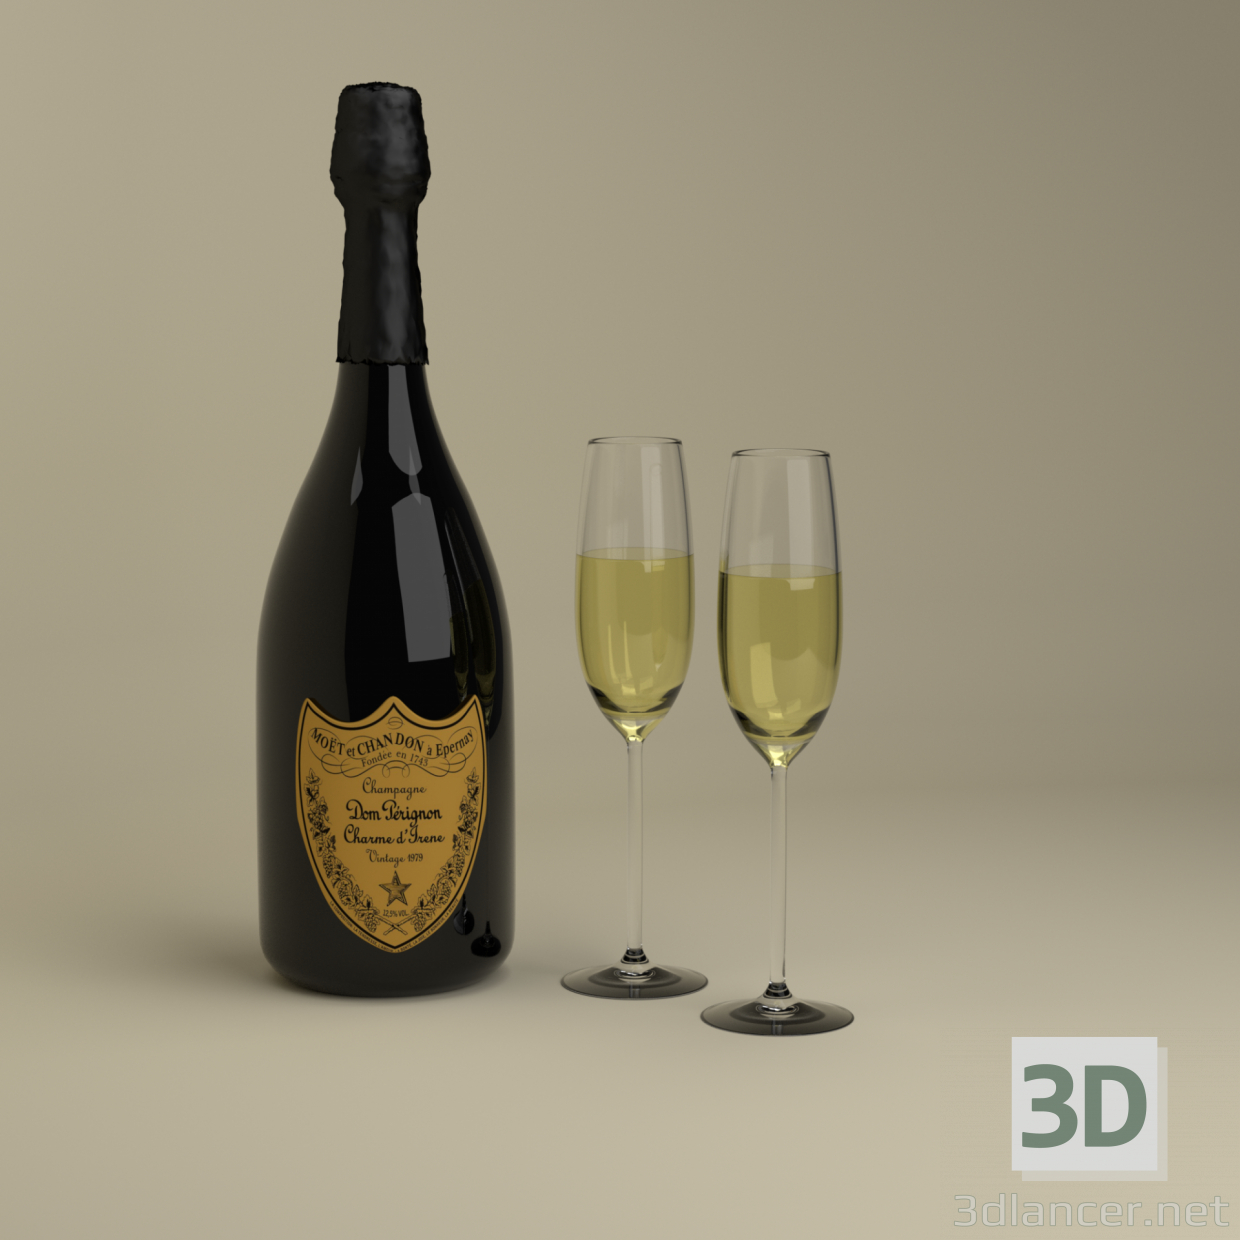 3d Champagne Dom Perignon Charme D'Irene Vintage 1979 and glasses model buy - render